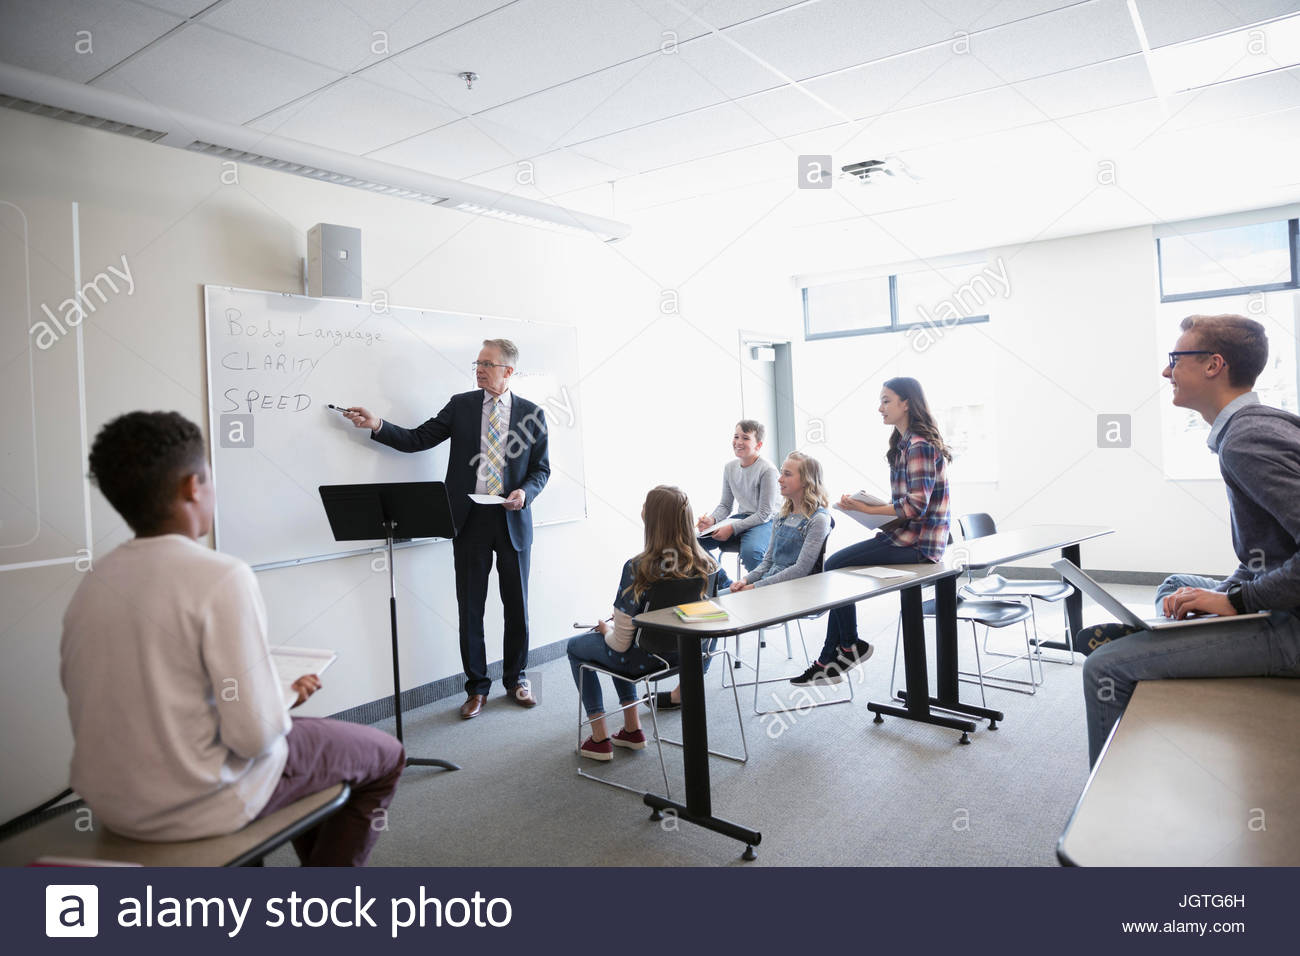 Middle school students listening to teacher leading lesson at whiteboard in classroom - Stock Image